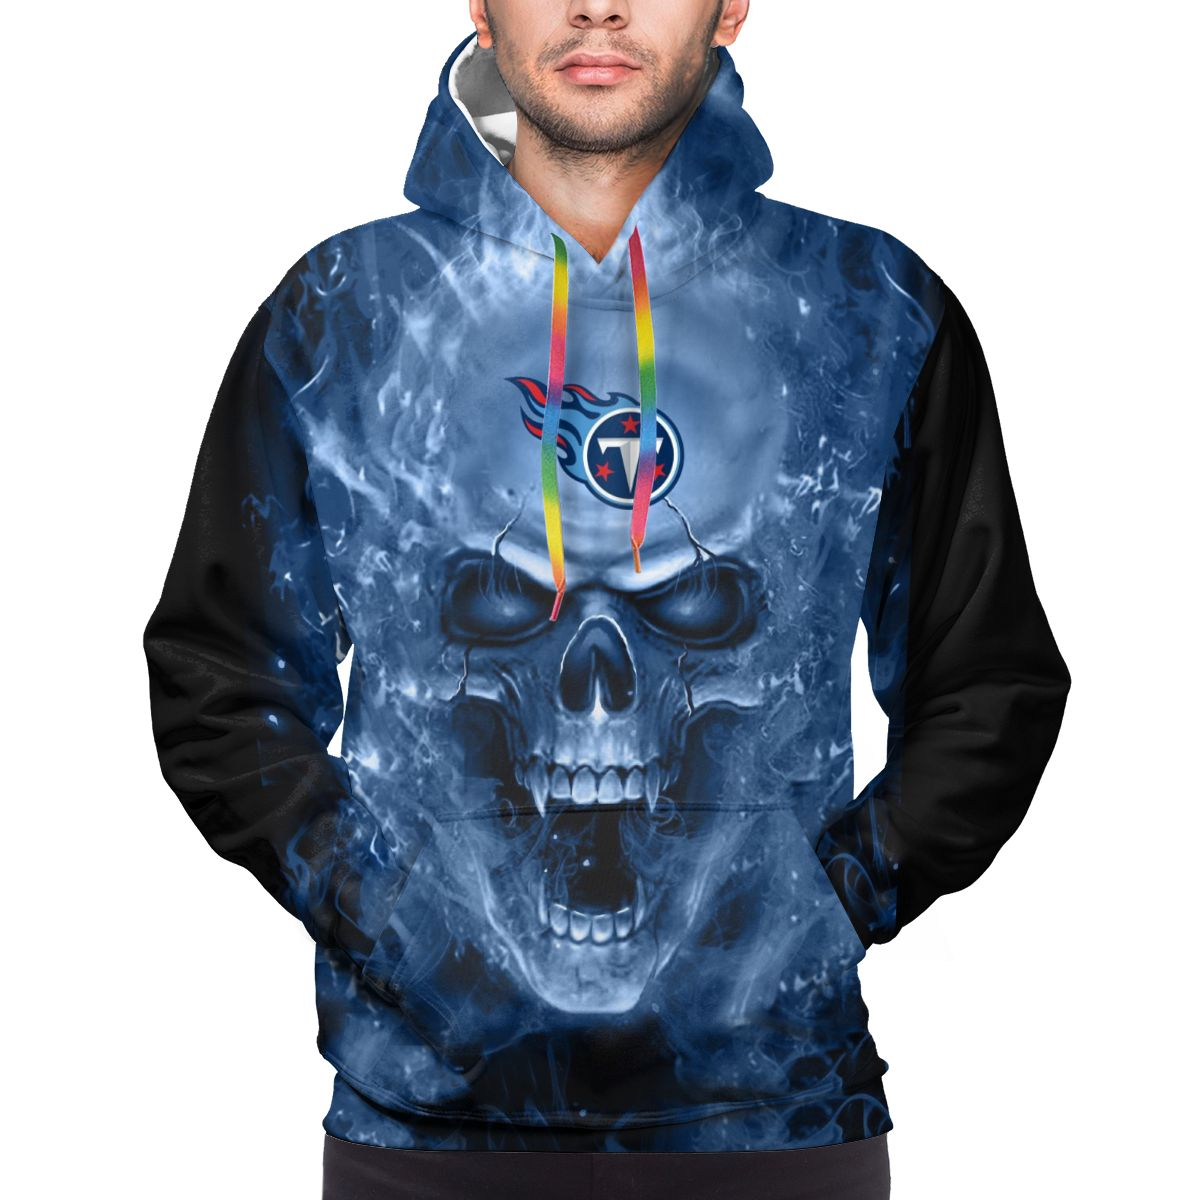 3D Skull Titans Logo Print Hoodies For Men Pullover Sweatshirt